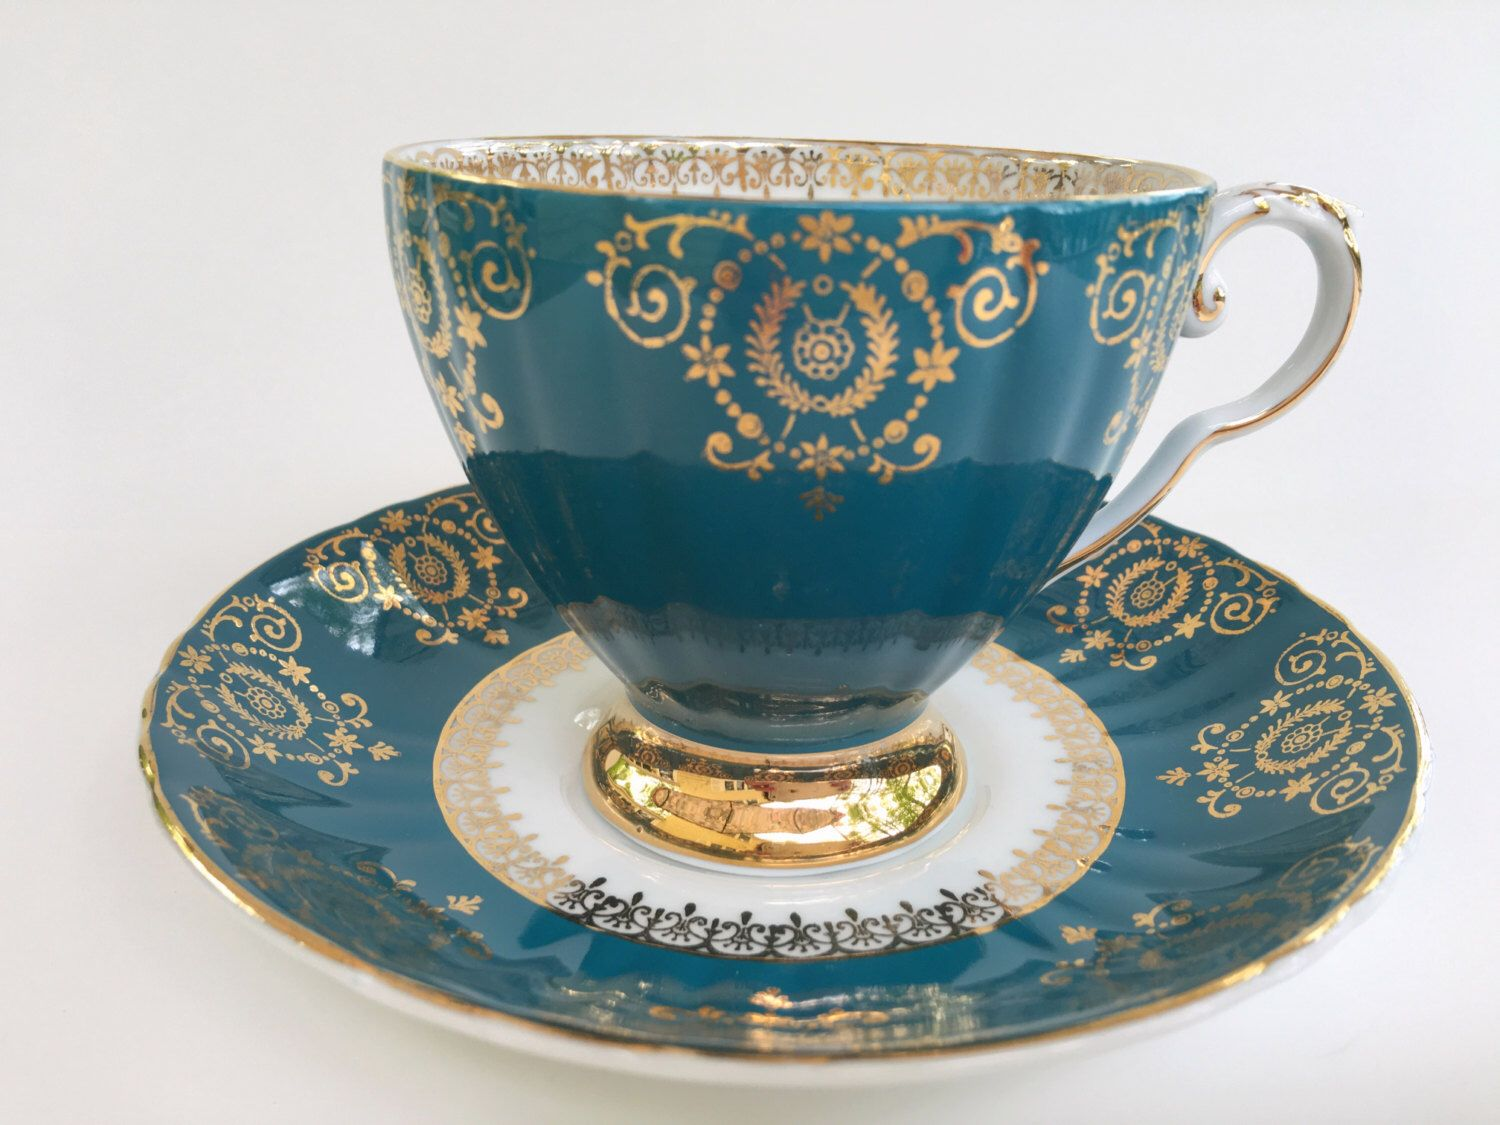 Antique Royal Grafton Tea Cup and Saucer, Aqua Gold Cups, Vintage Tea Cups, English Teacups, Tea Party, Tea Set, Bone China Cups by AprilsLuxuries on Etsy https://www.etsy.com/listing/295306567/antique-royal-grafton-tea-cup-and-saucer